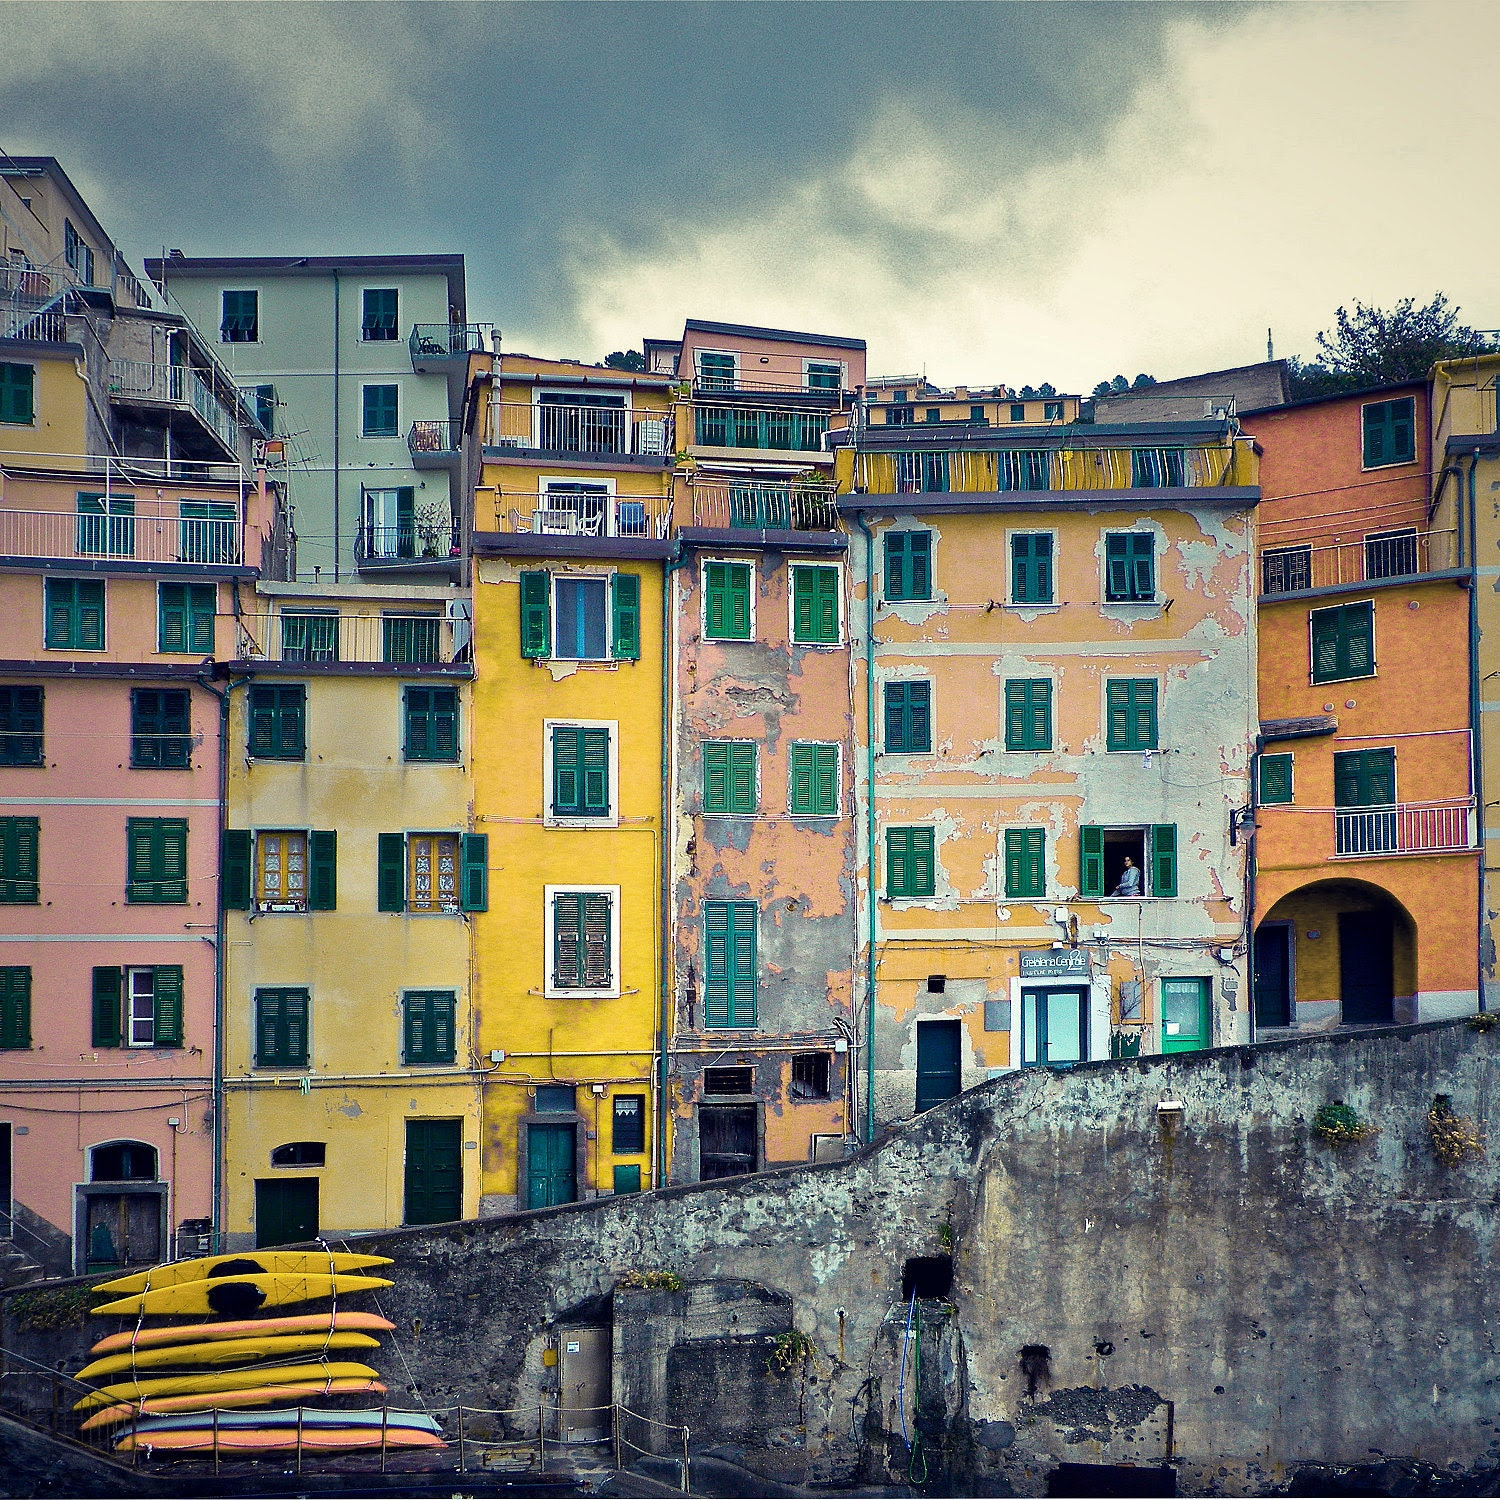 Woman in the Window as Storm Approaches - Riomaggiore, Cinque Terre, Italy - Fine Art Photograph - stevepreston